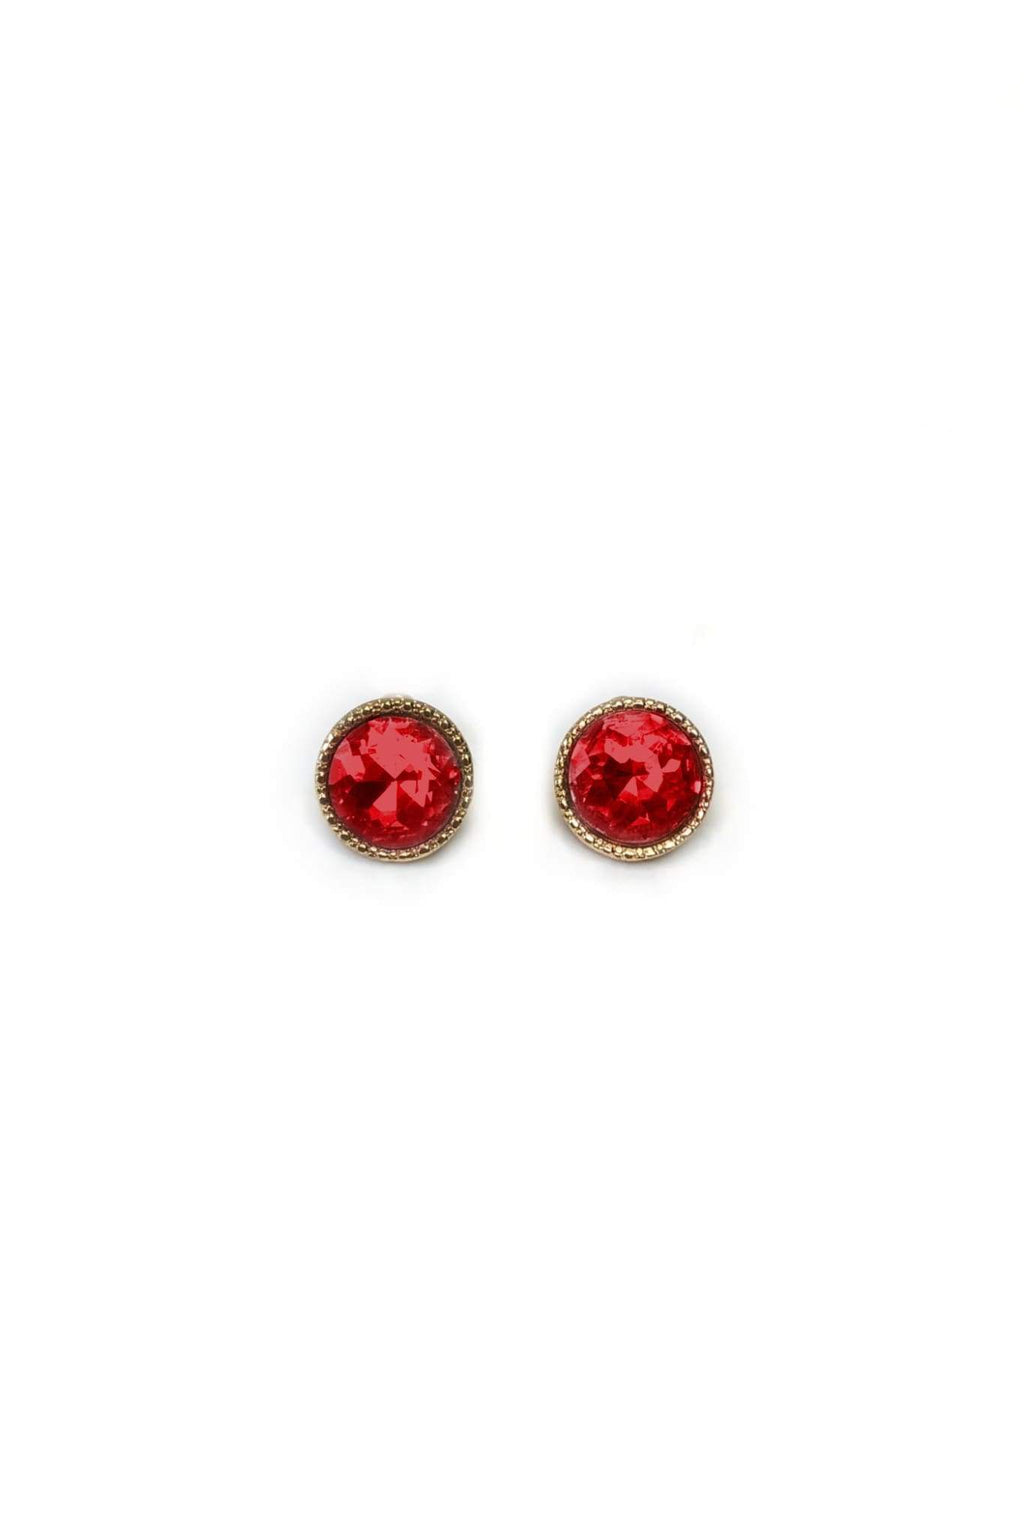 Round Rhinestone Stud Earrings-Article & Thread Boutique